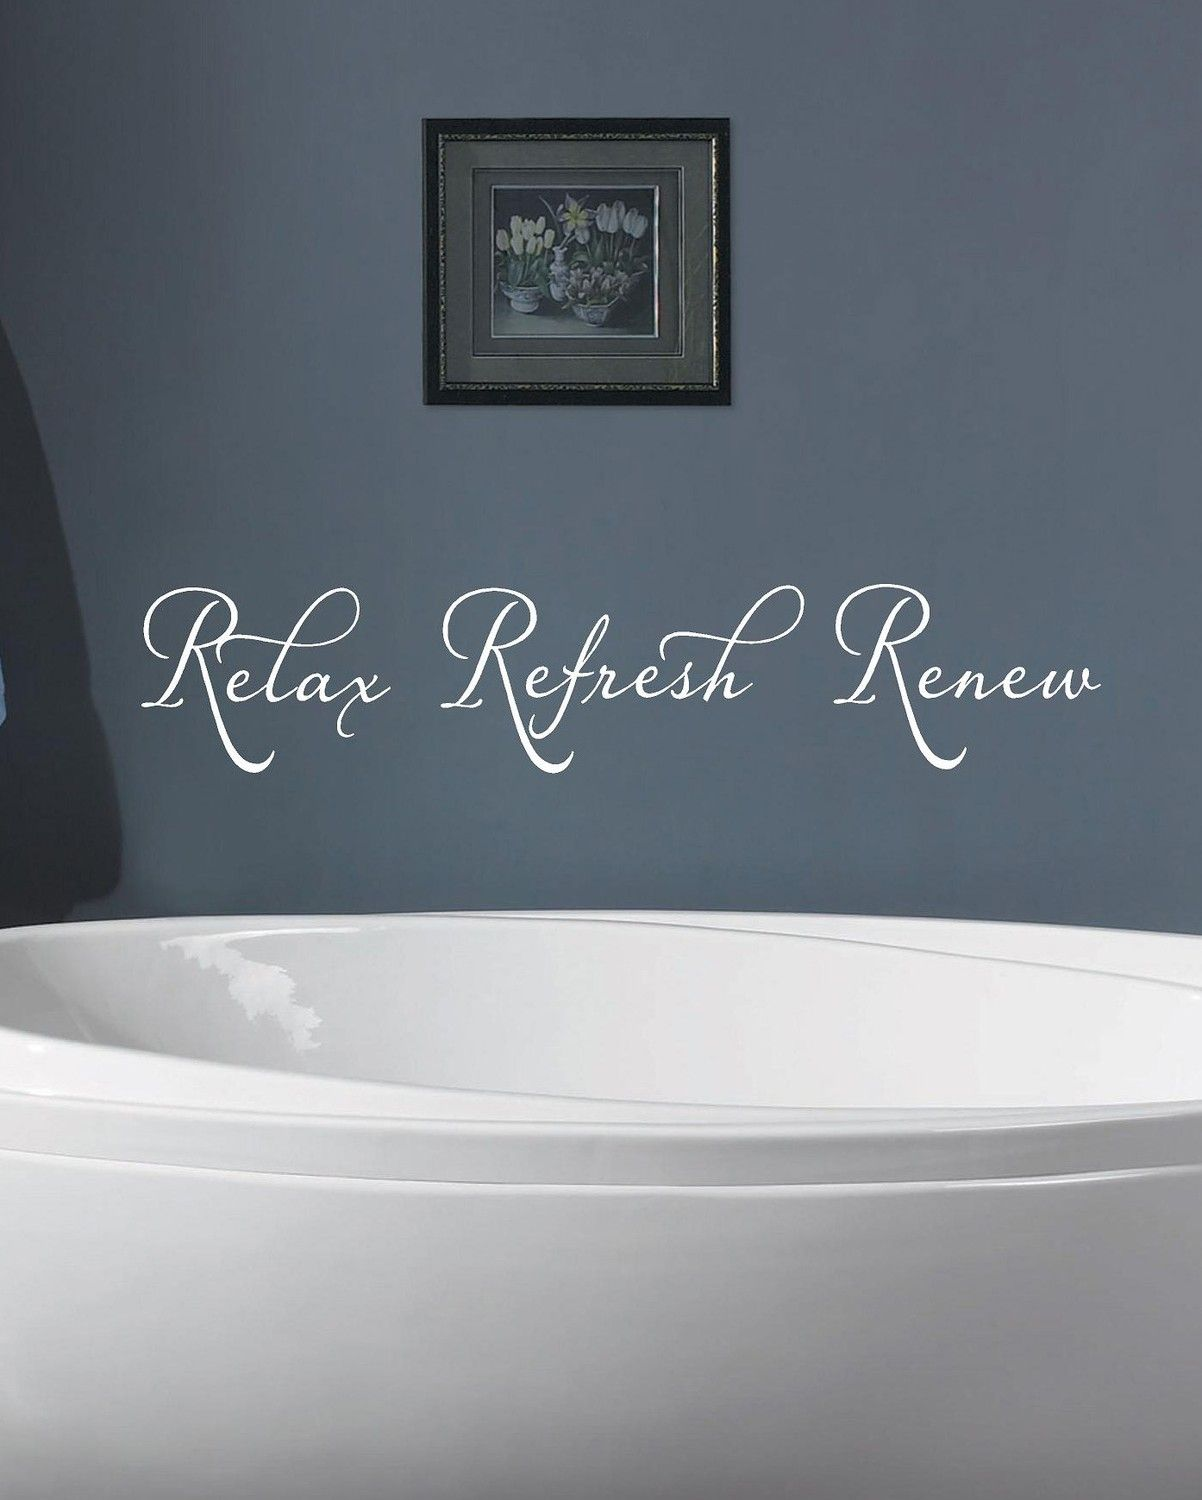 Relax refresh renew bathroom vinyl lettering wall art for Renew bathroom